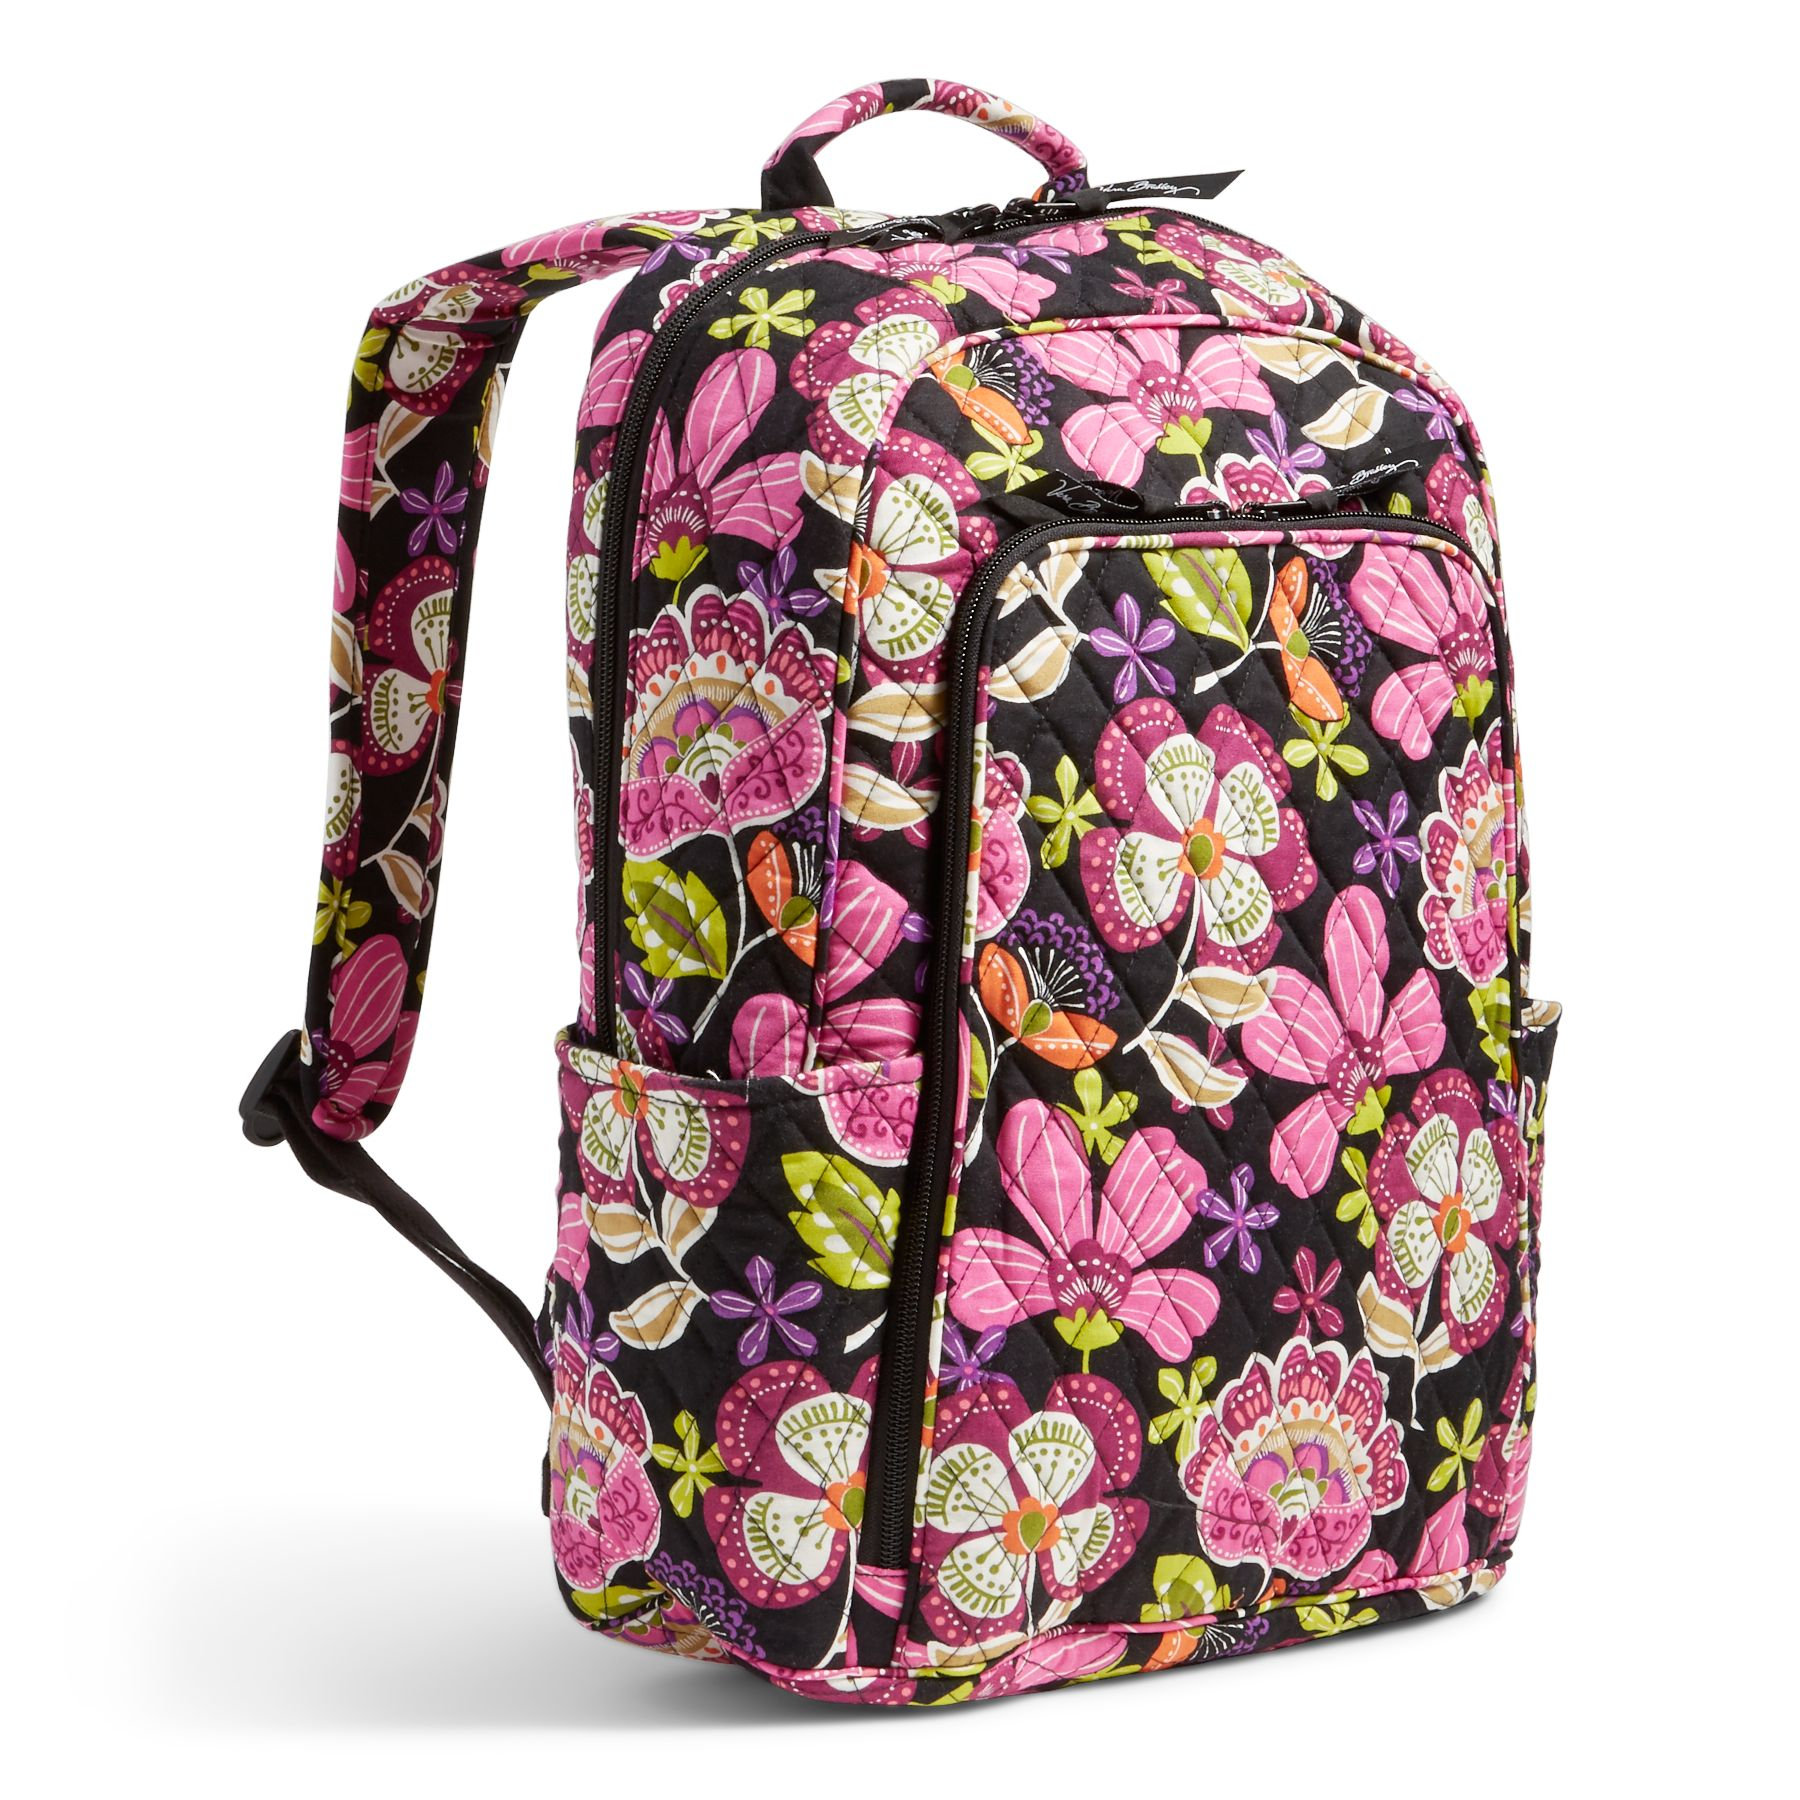 27b1716110 Vera Bradley Backpack With Laptop Pocket- Fenix Toulouse Handball